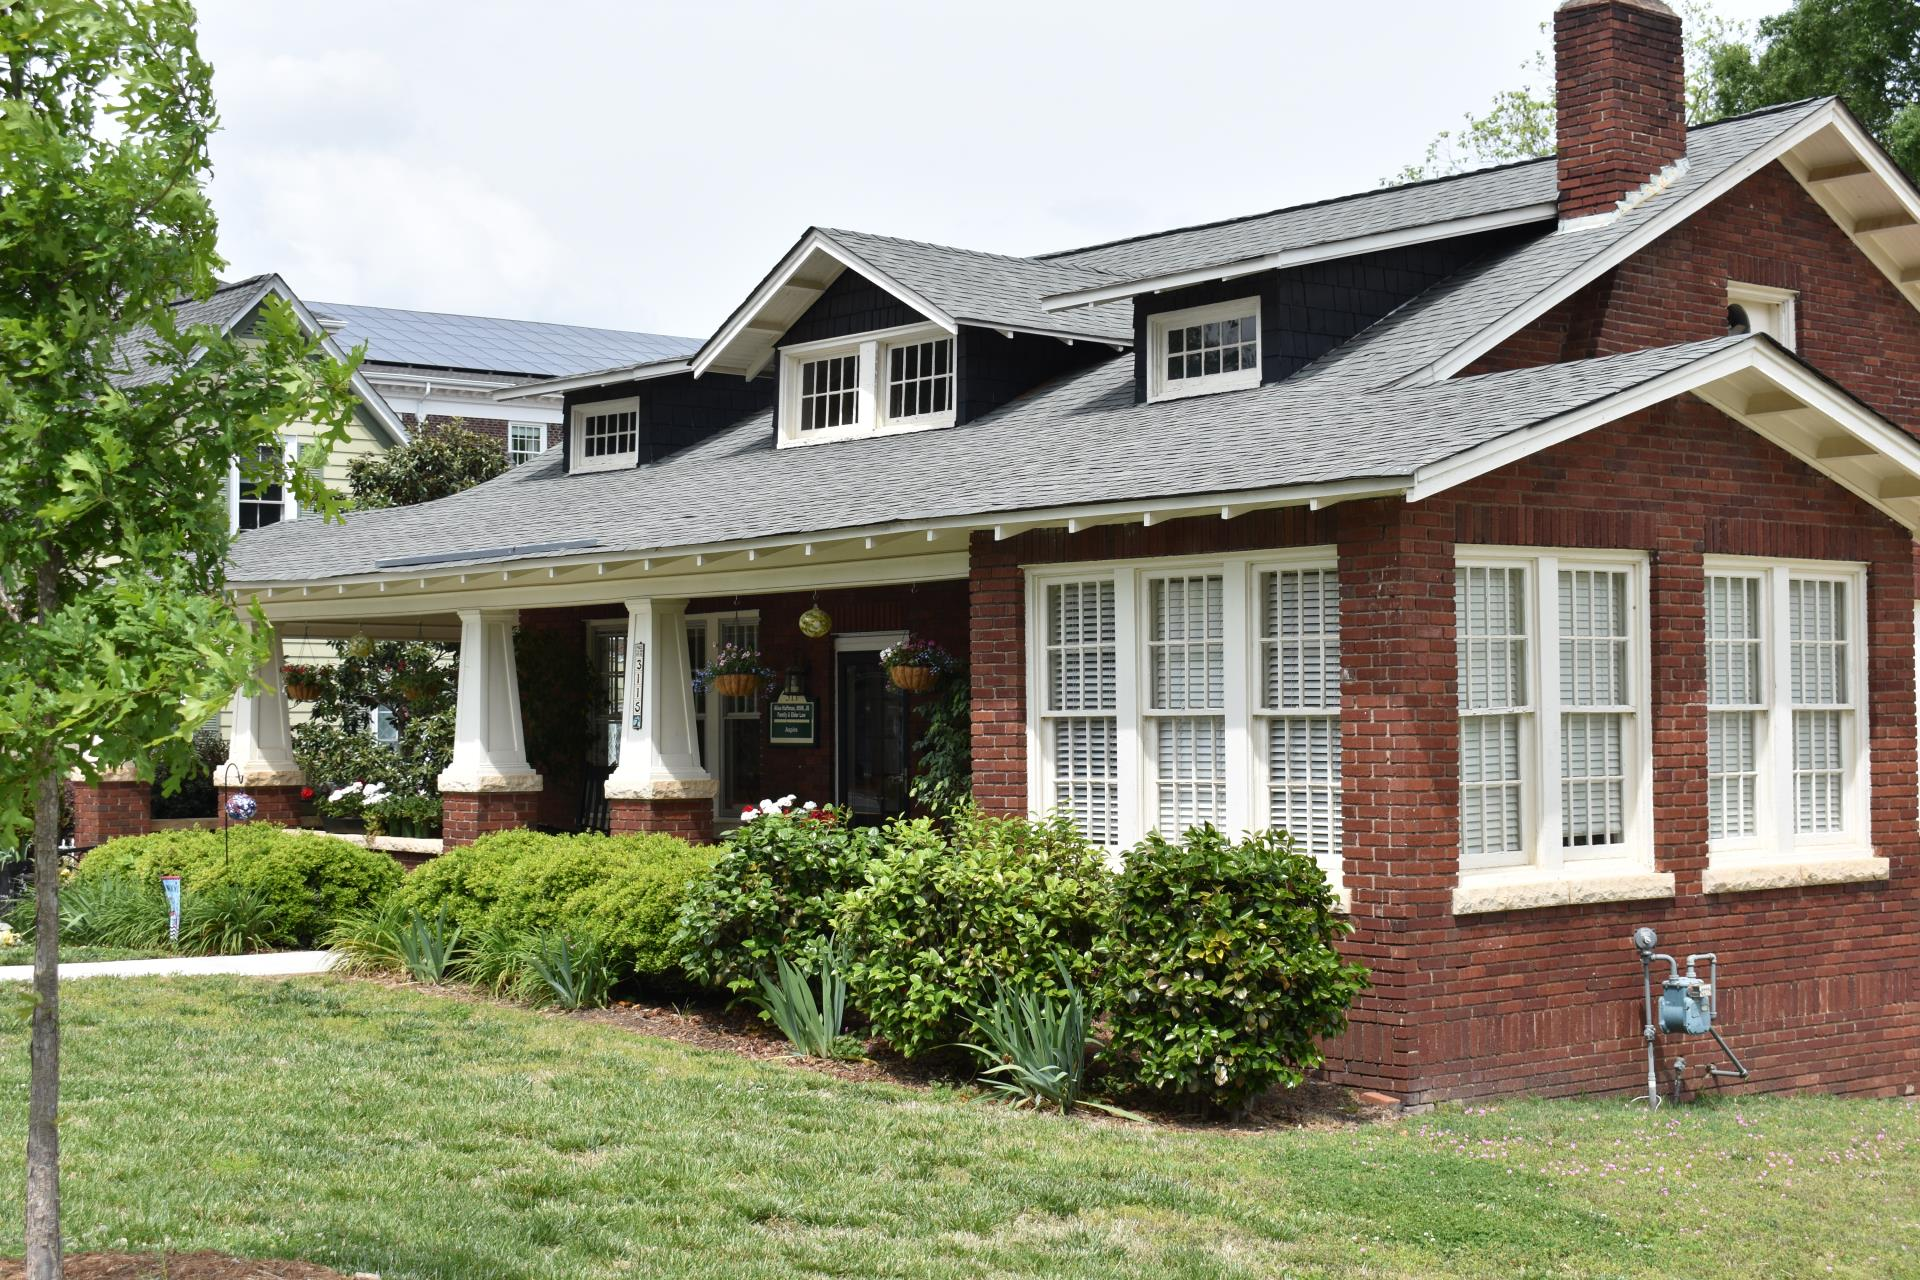 Dr. John Pullen Hunter House